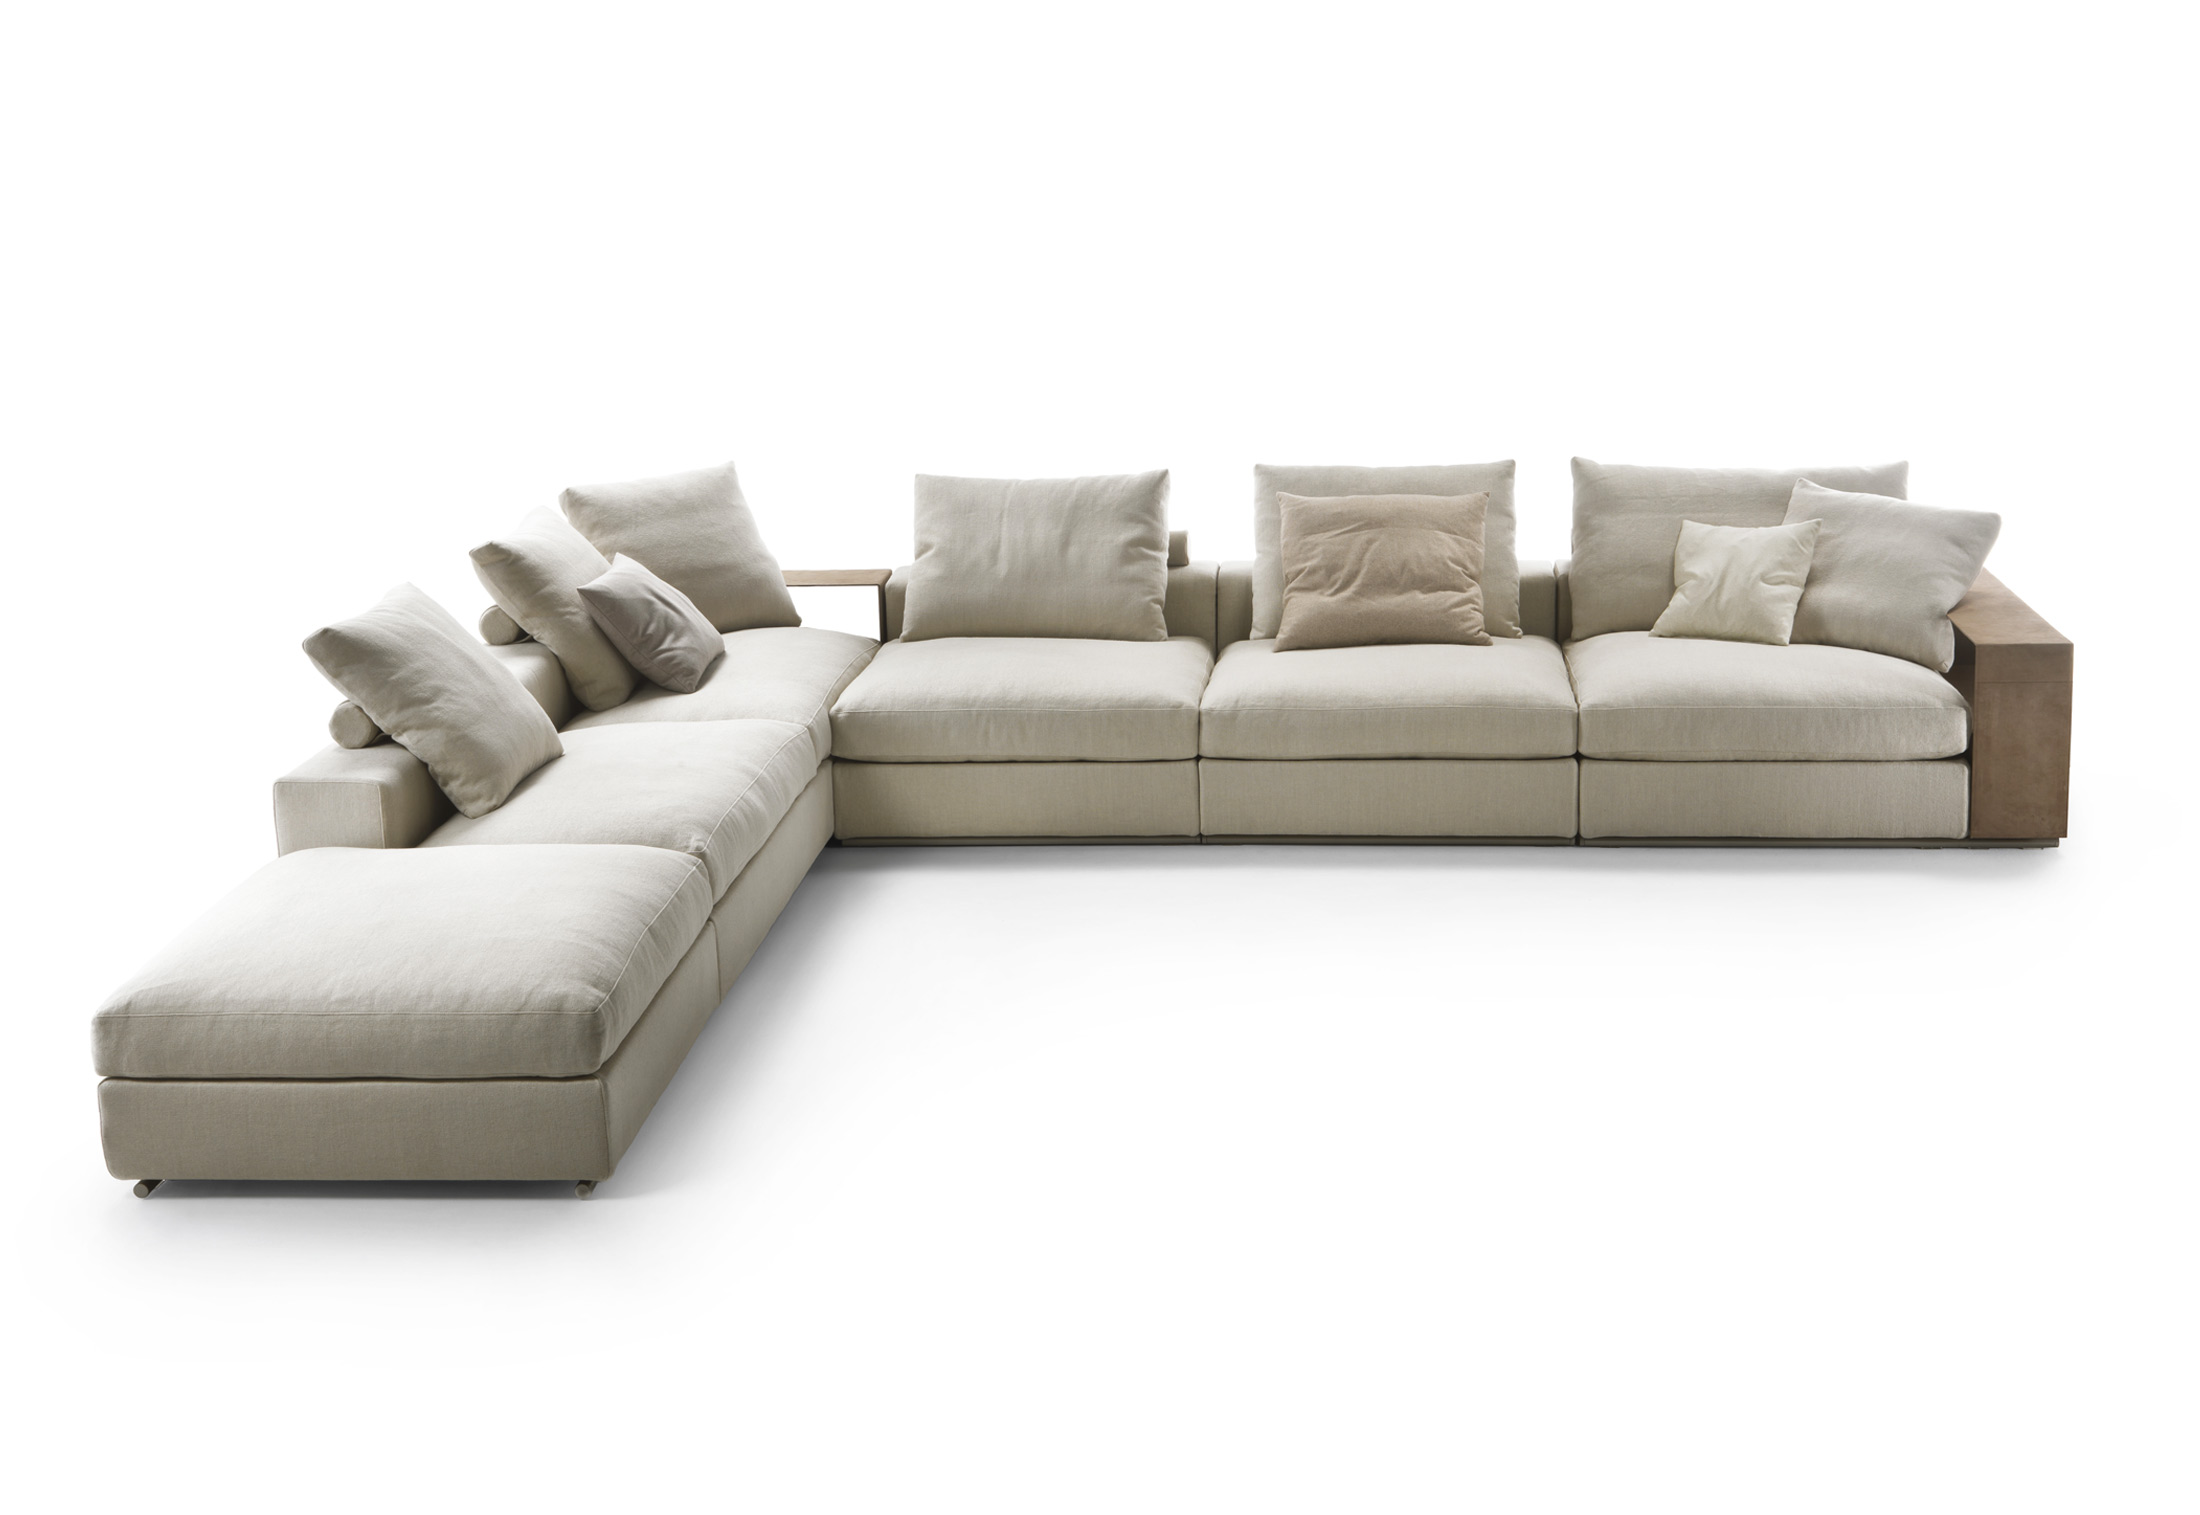 Groundpiece Sectional Sofa By Flexform Stylepark